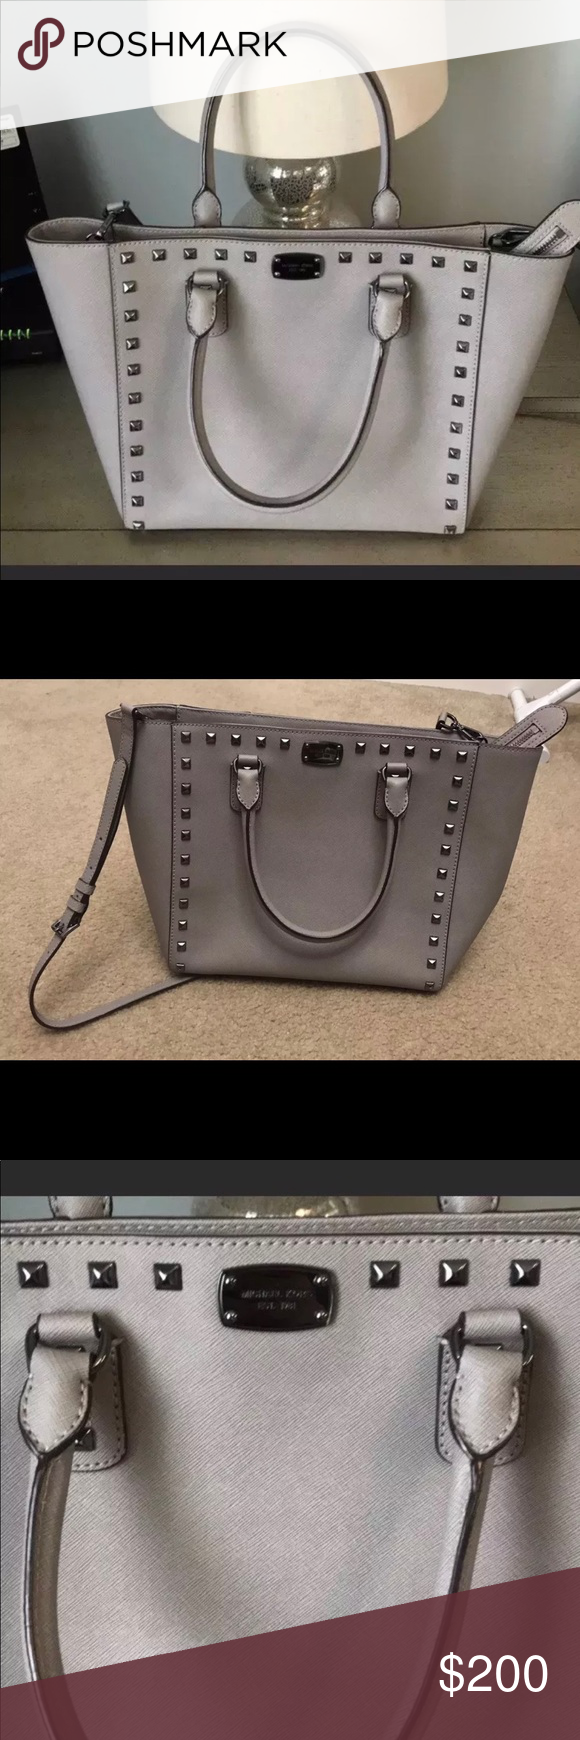 fe298c8a06d2 MICHAEL KORS Selma Large Studded Gray Purse MICHAEL KORS Selma Large Studded  Gray Leather Satchel Handbag